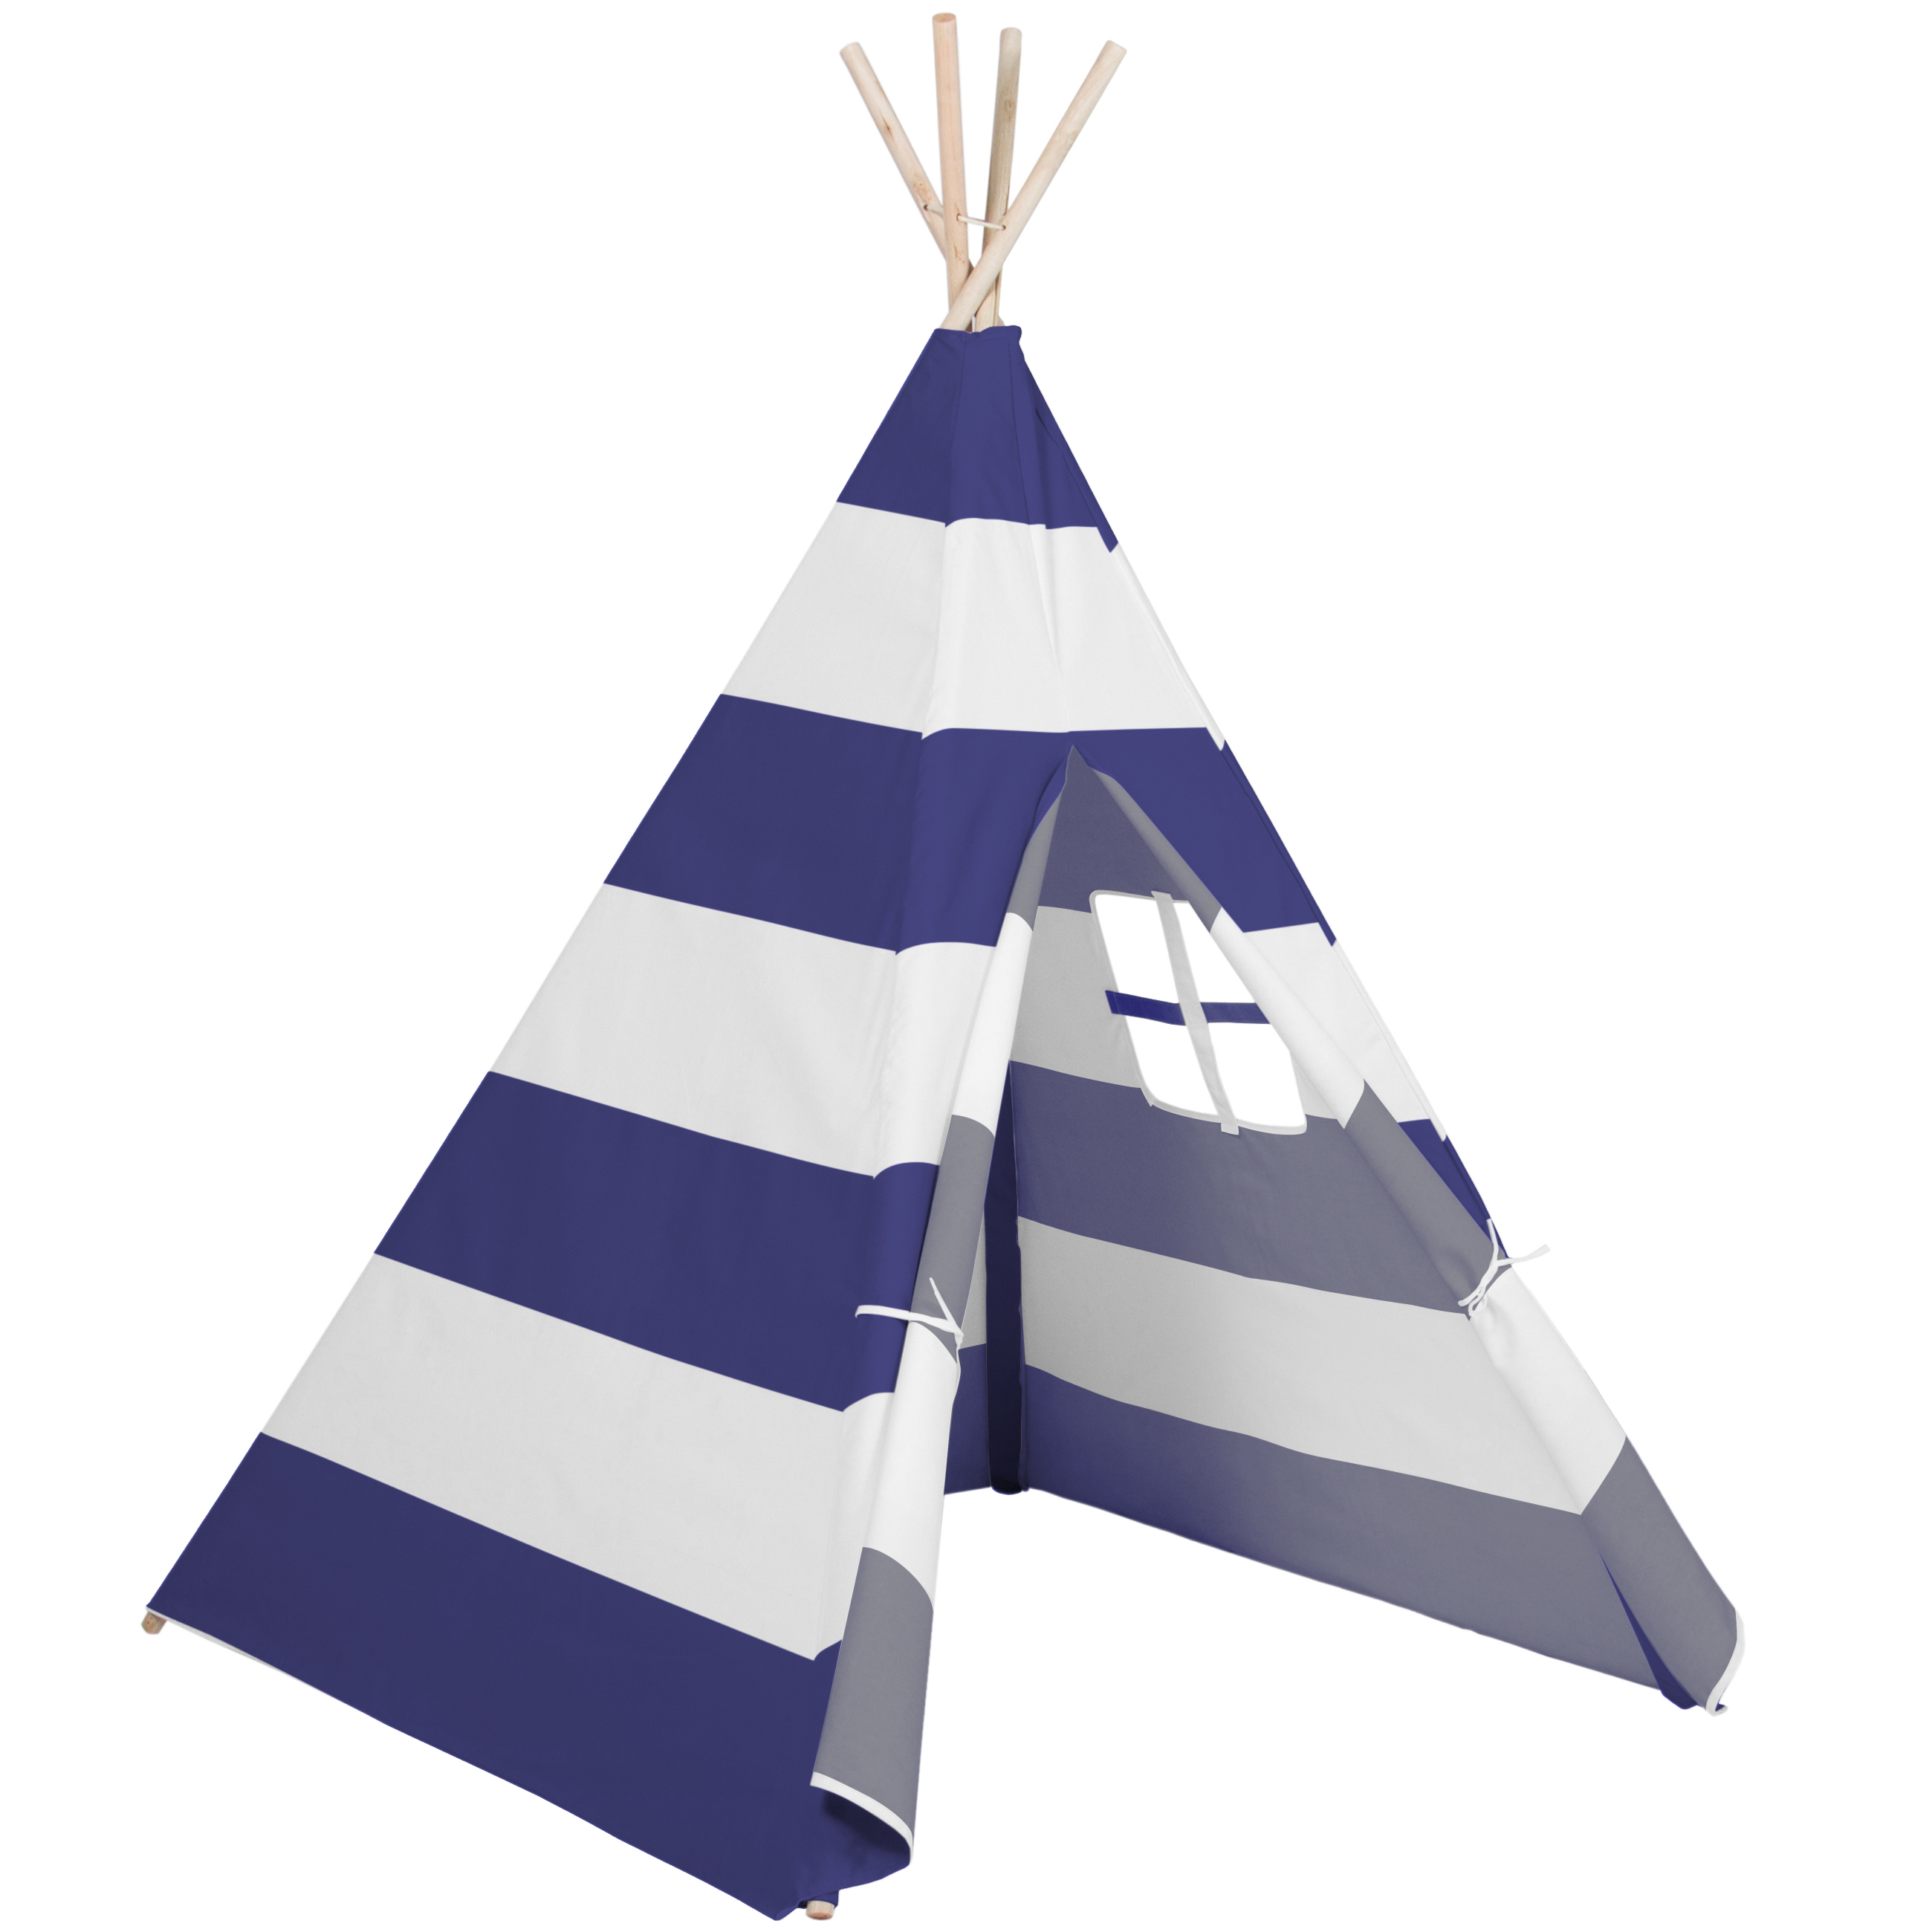 Best Choice Products 6ft Kids Stripe Cotton Canvas Indian Teepee Playhouse Sleeping Dome Play Tent w  Carrying... by Best Choice Products